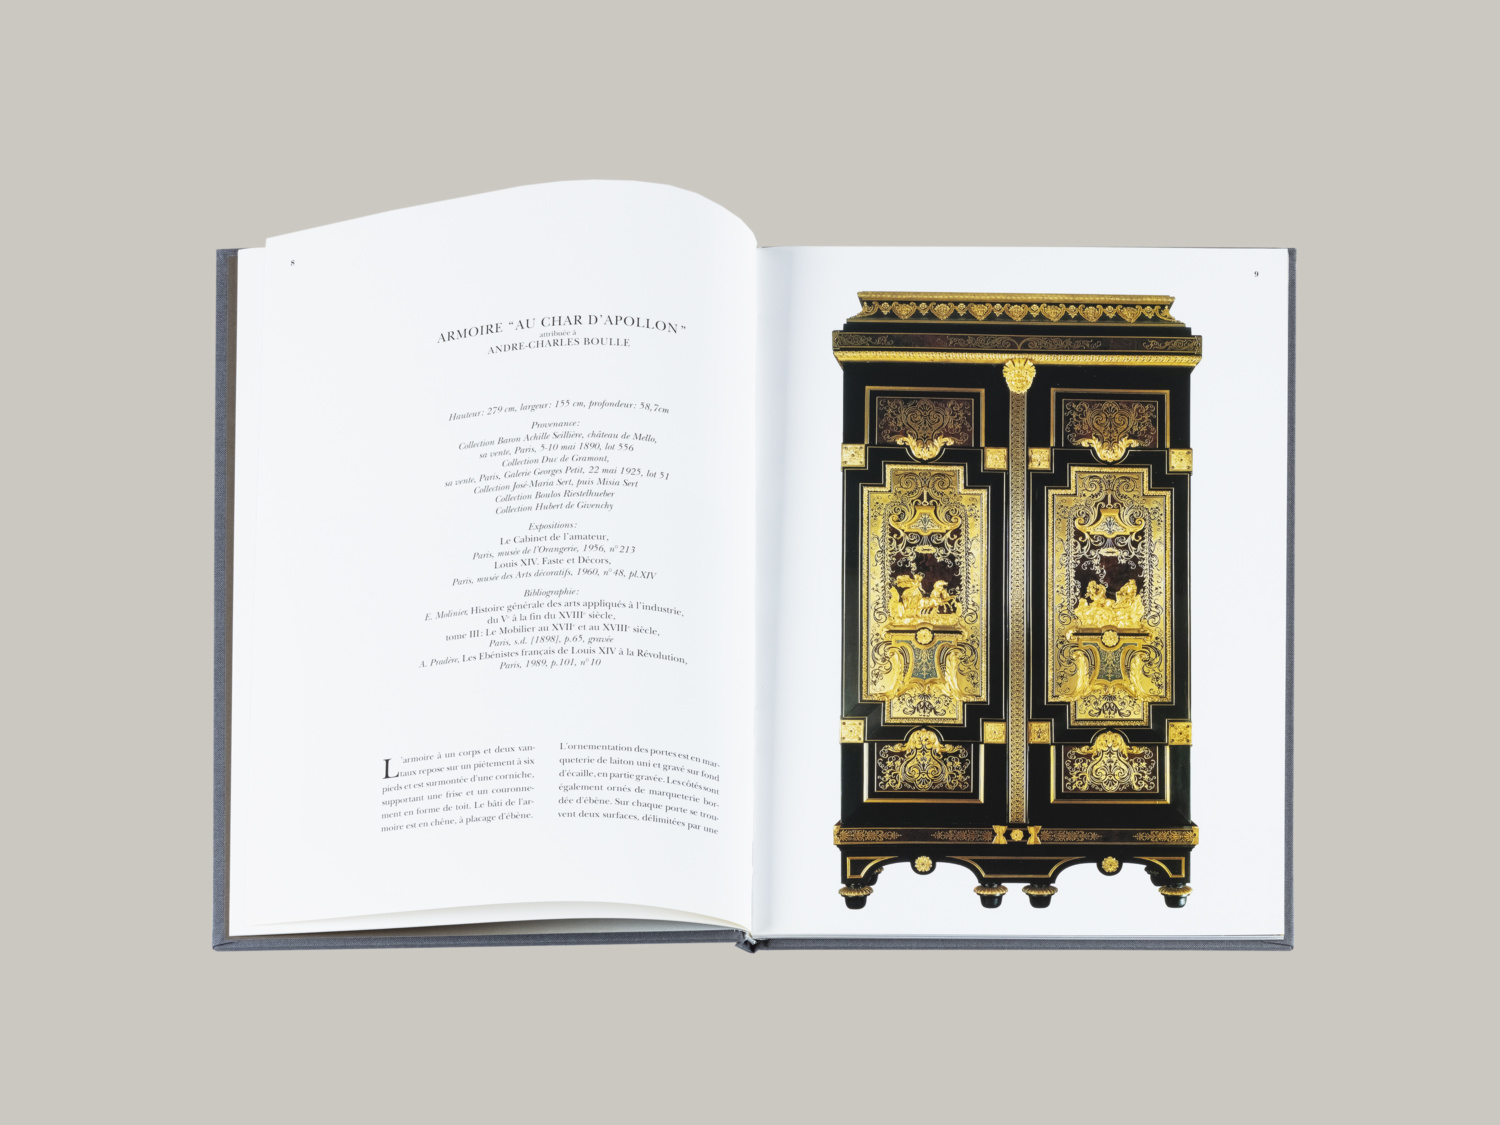 L'Armoire au char d'Apollon par André-Charles Boulle, provenant de la collection de M. Hubert de Givenchy - Galerie Kugel